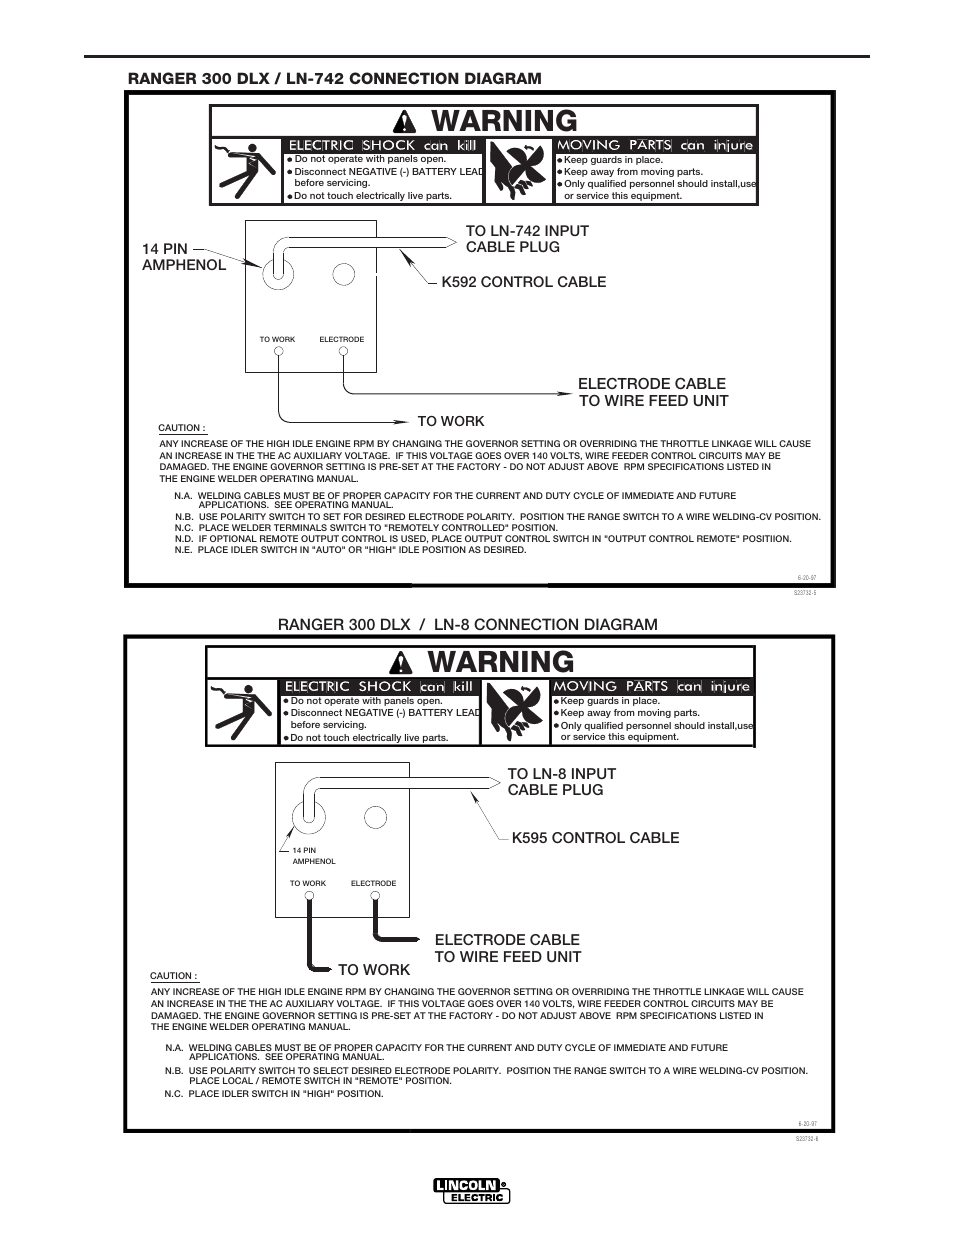 Connection Diagrams Warning Lincoln Electric Im571 Ranger 300 D Welder Wiring Diagram And Dlx User Manual